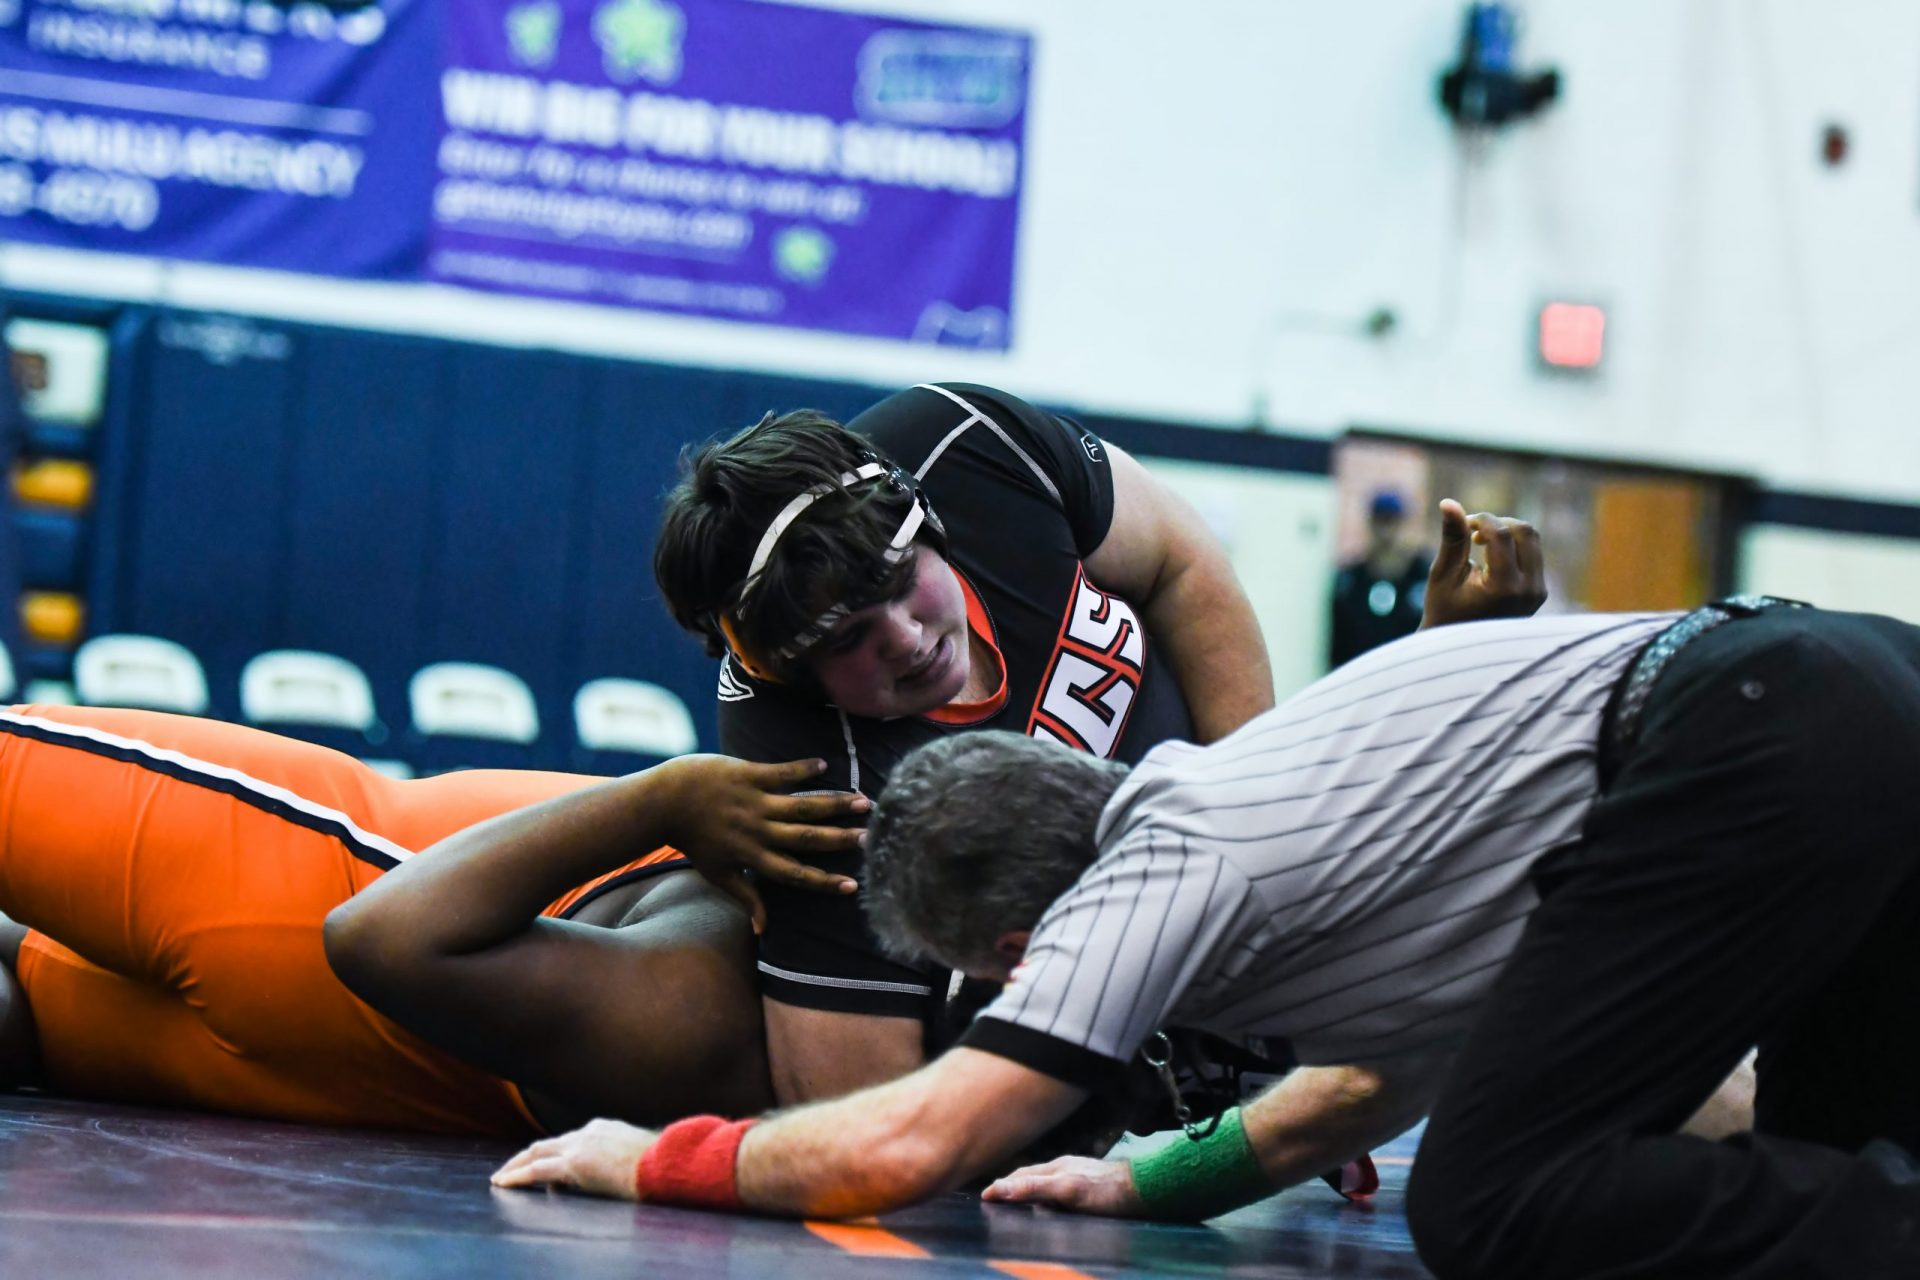 Allatoona Wrestling vs North Cobb Wrestling on January 5, 2019 - Kennesaw, GA (Credit Image: Chrystal Moore)